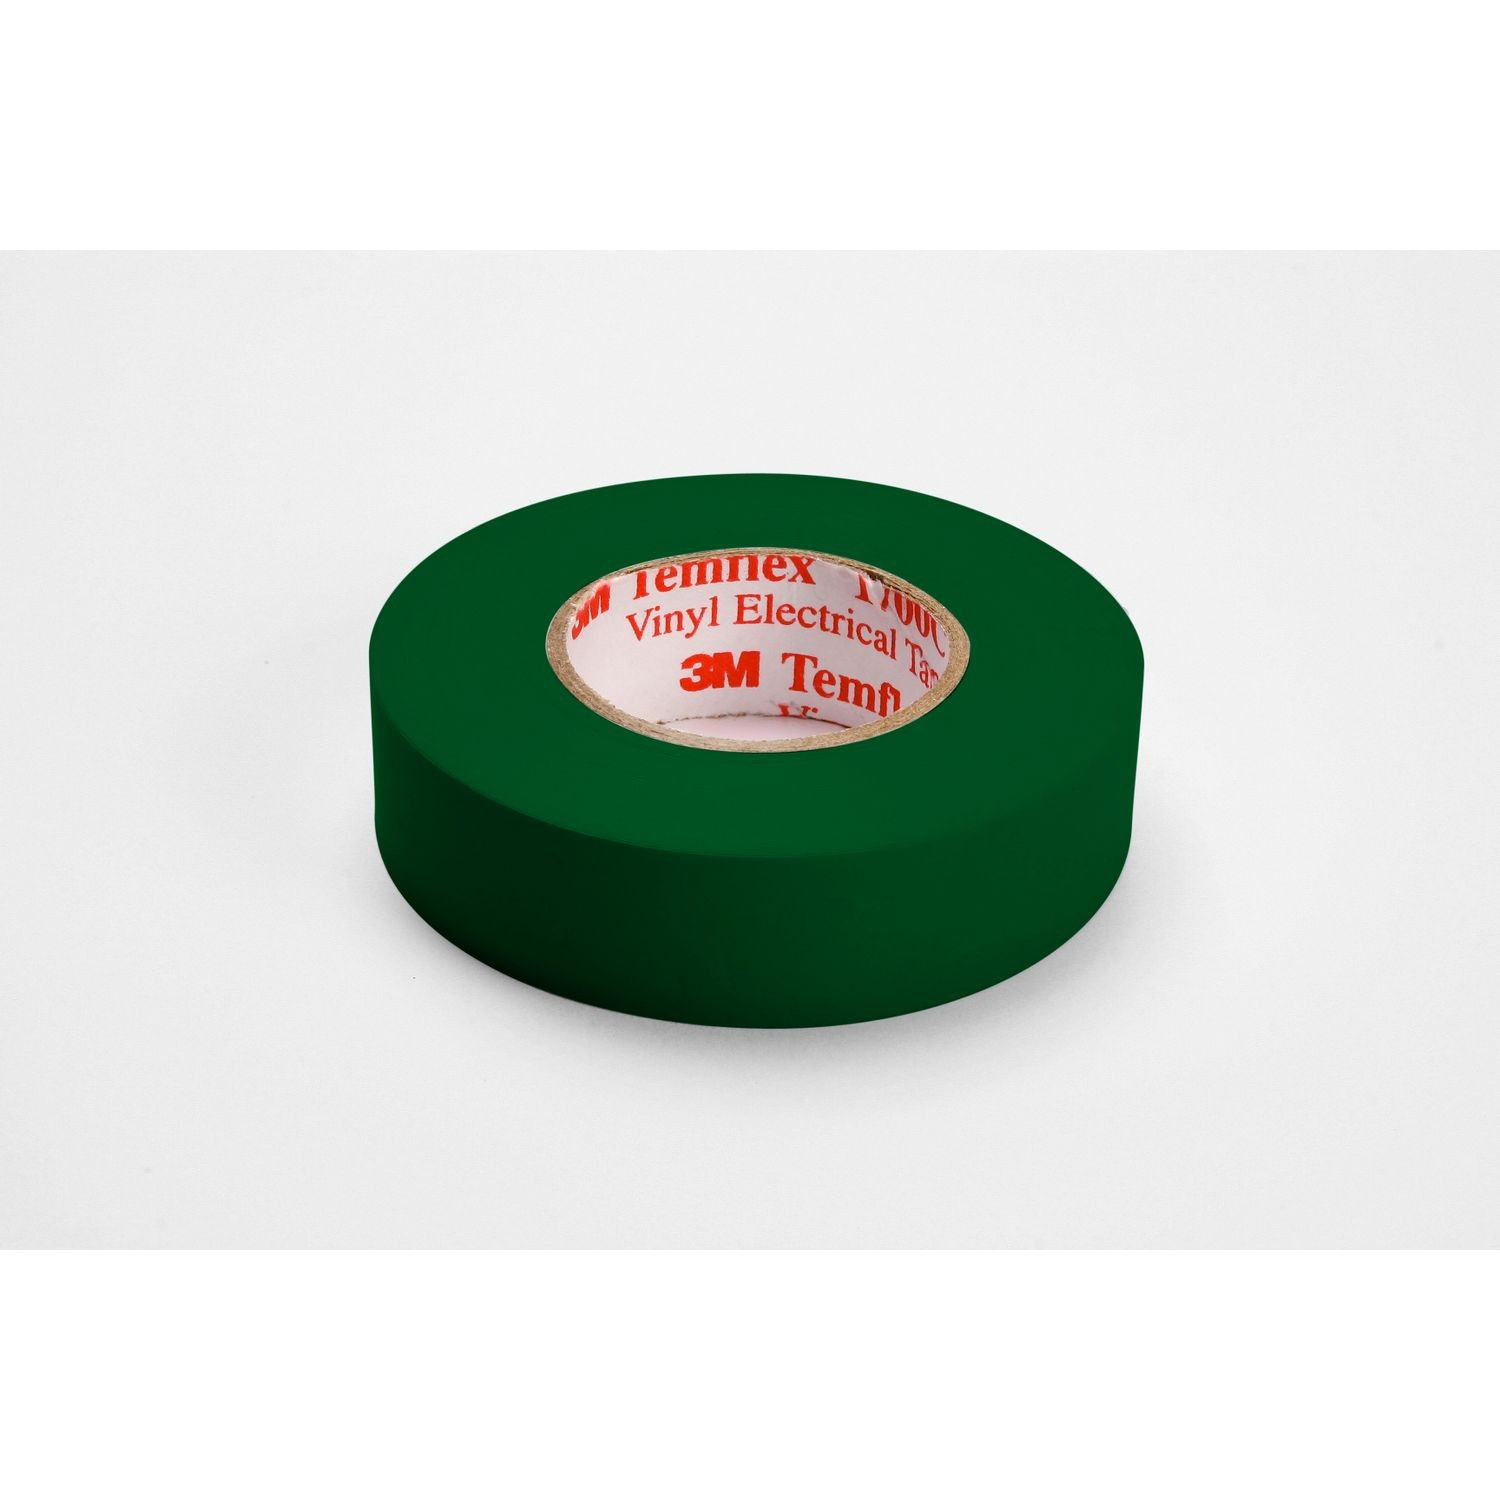 3M Temflex Green Vinyl Electrical Tape 3/4 IN. X 66 ft.